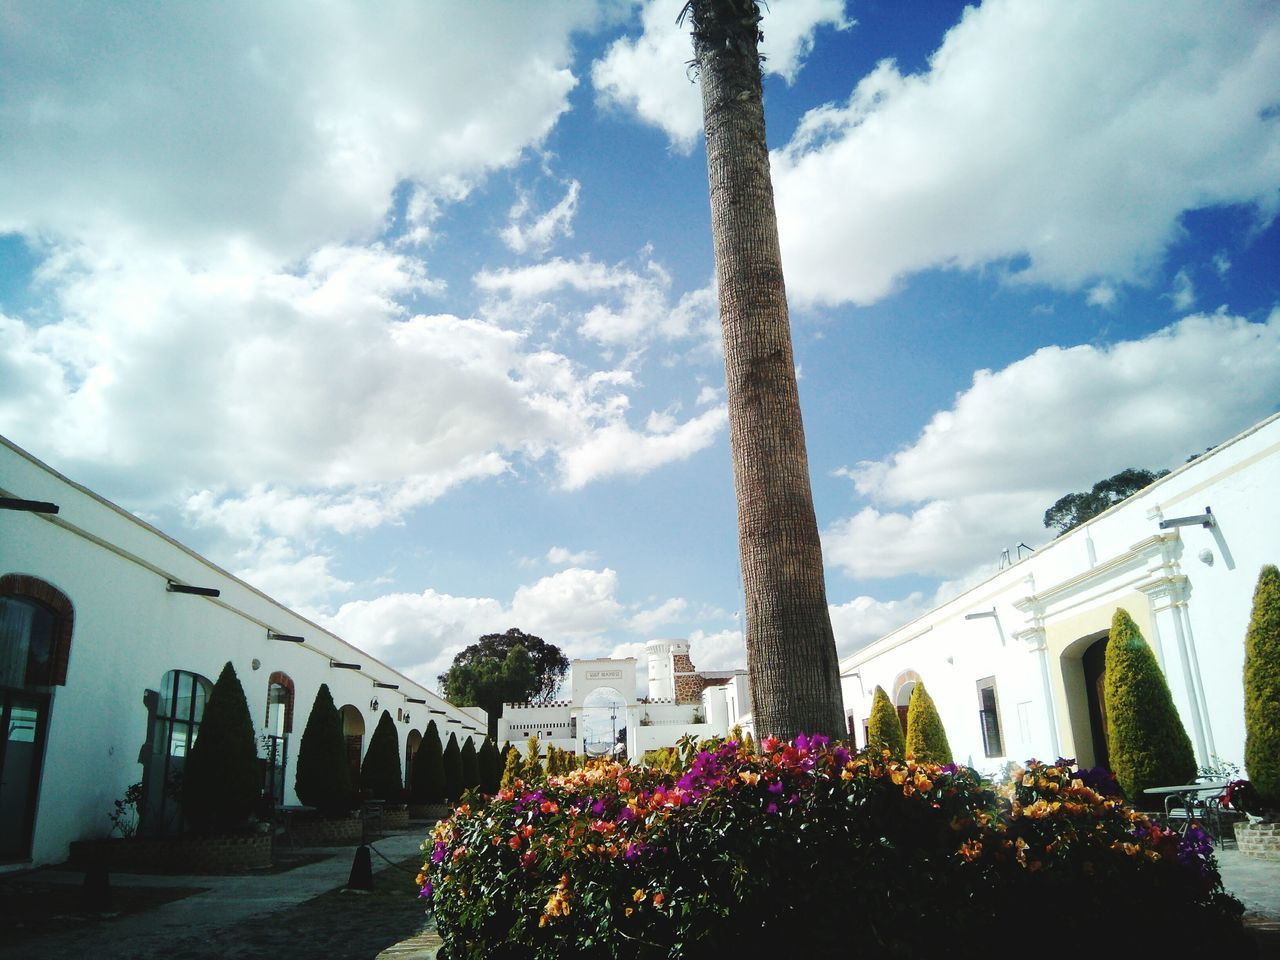 architecture, sky, built structure, architectural column, cloud - sky, outdoors, flower, no people, day, nature